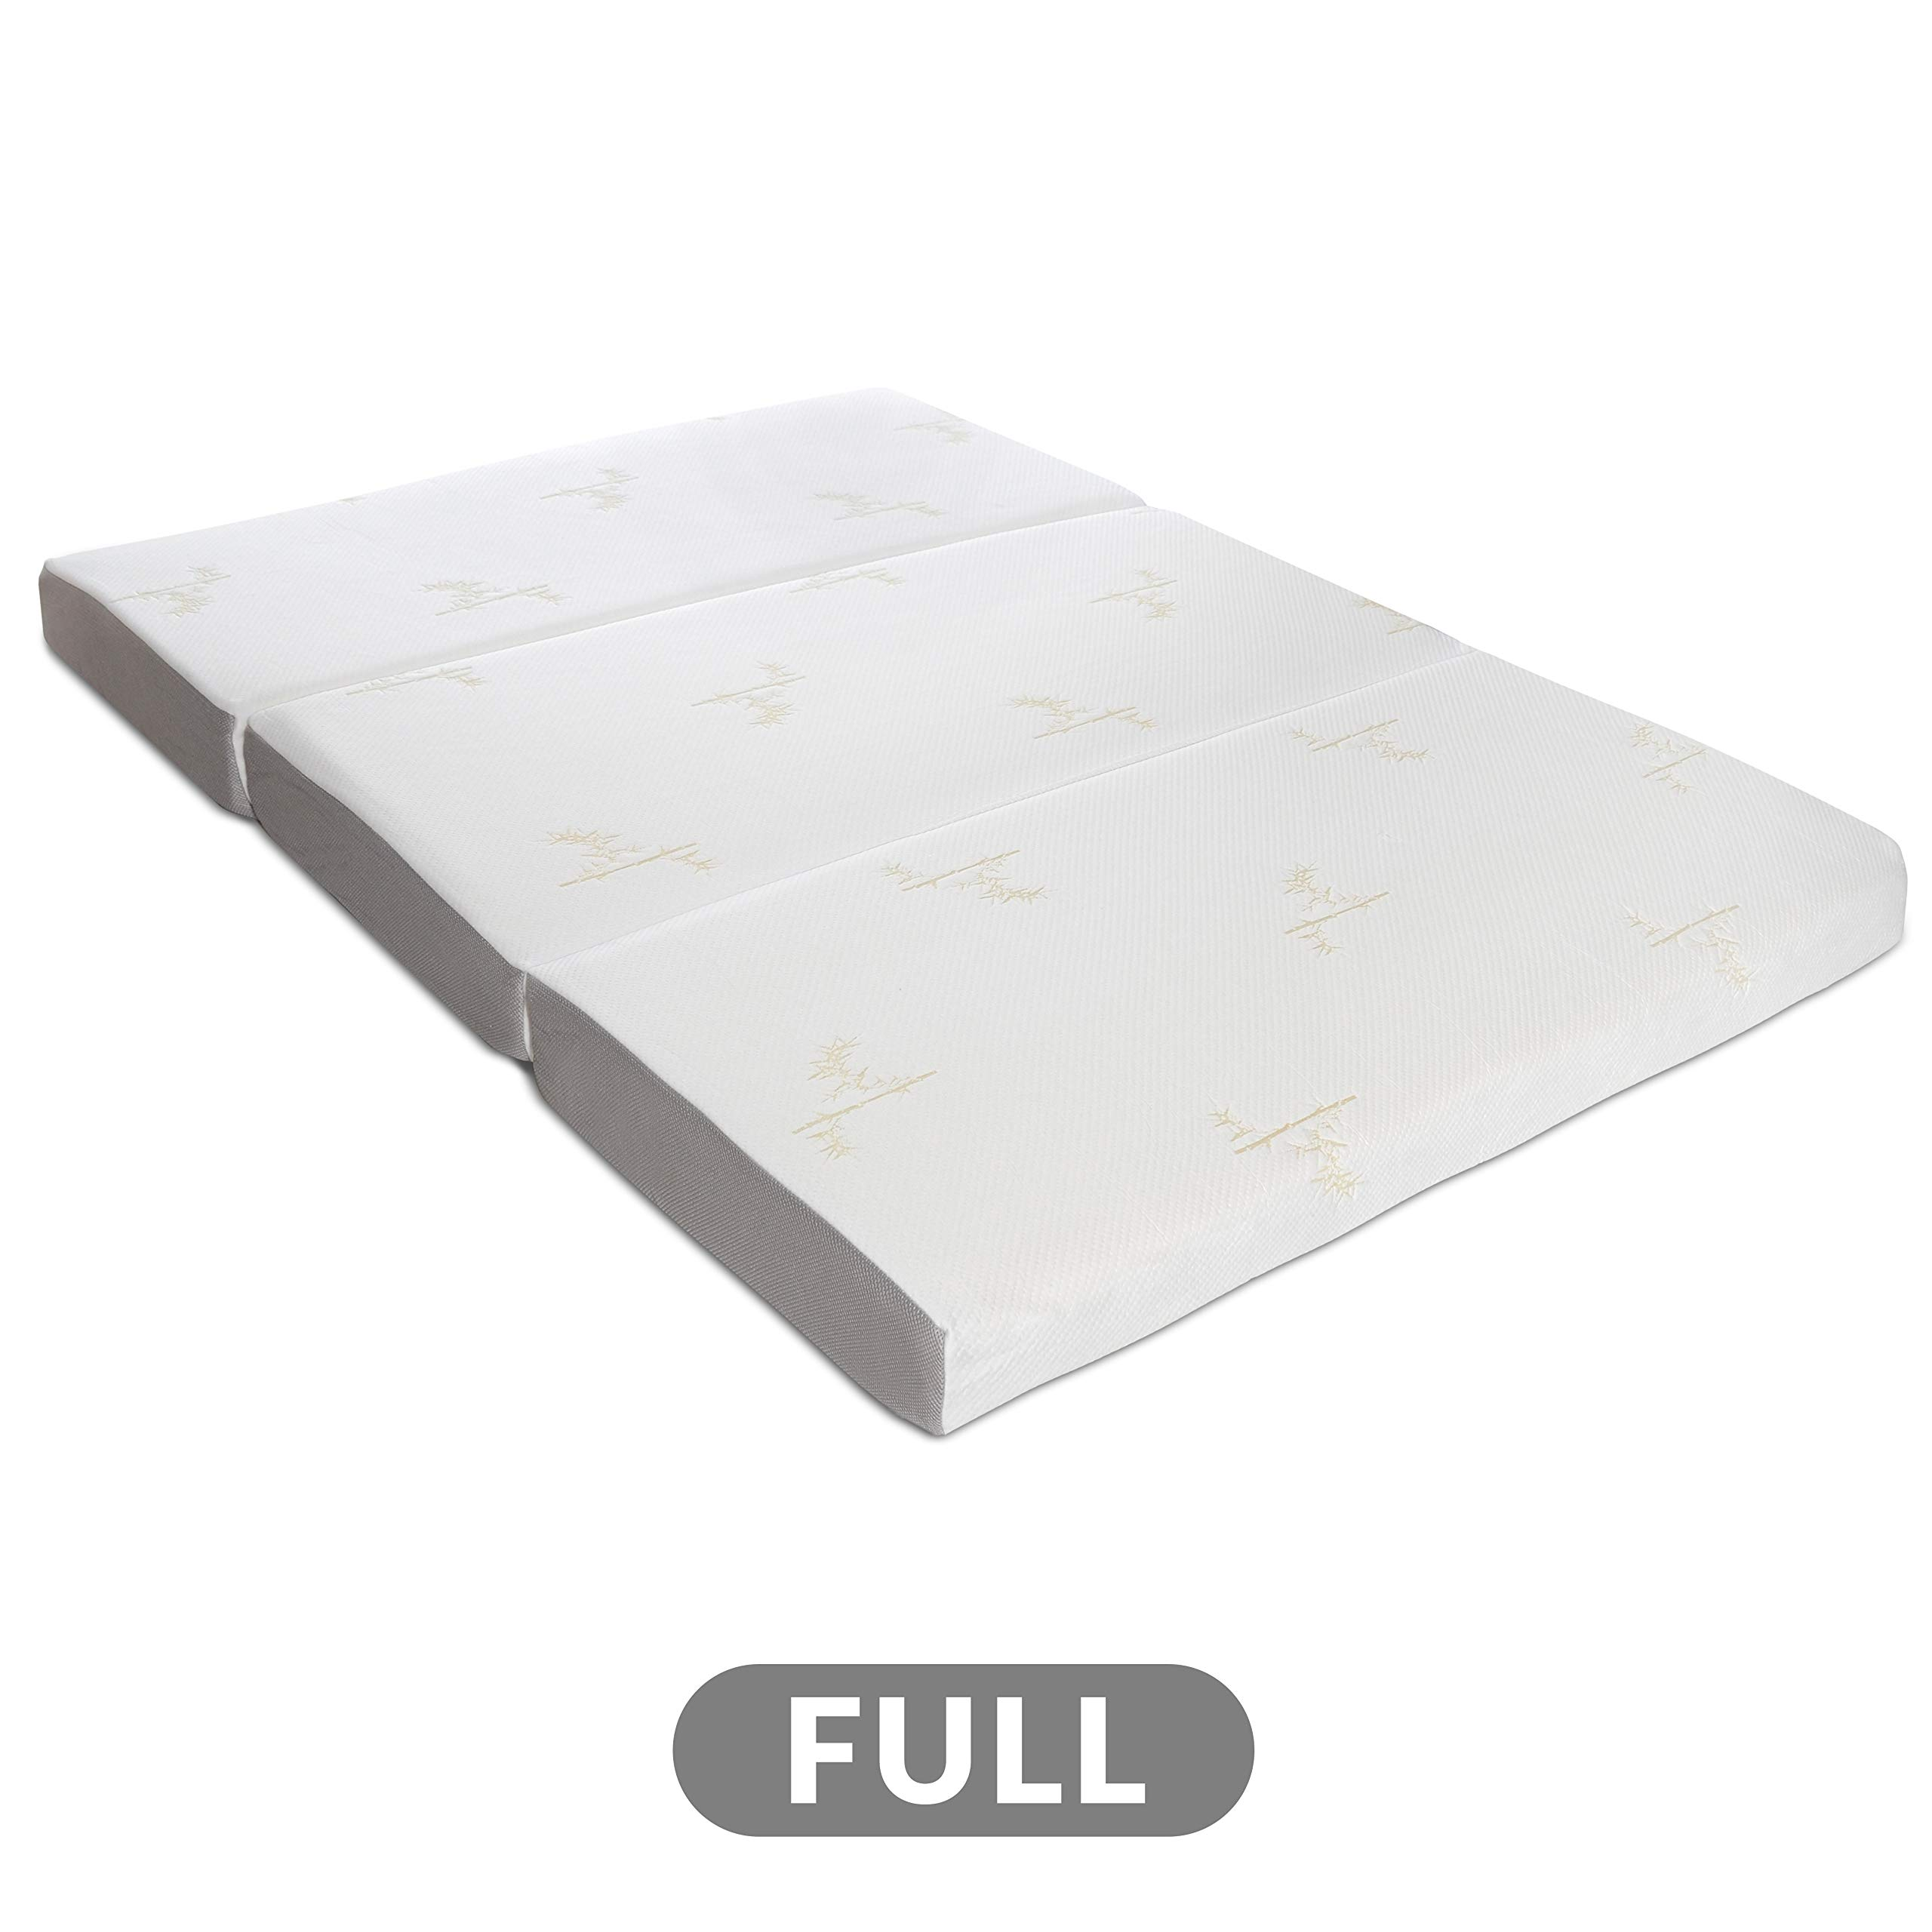 Milliard Tri Folding Memory Foam Mattress with Washable Cover Full (73 inches x 52 inches x 6 inches)